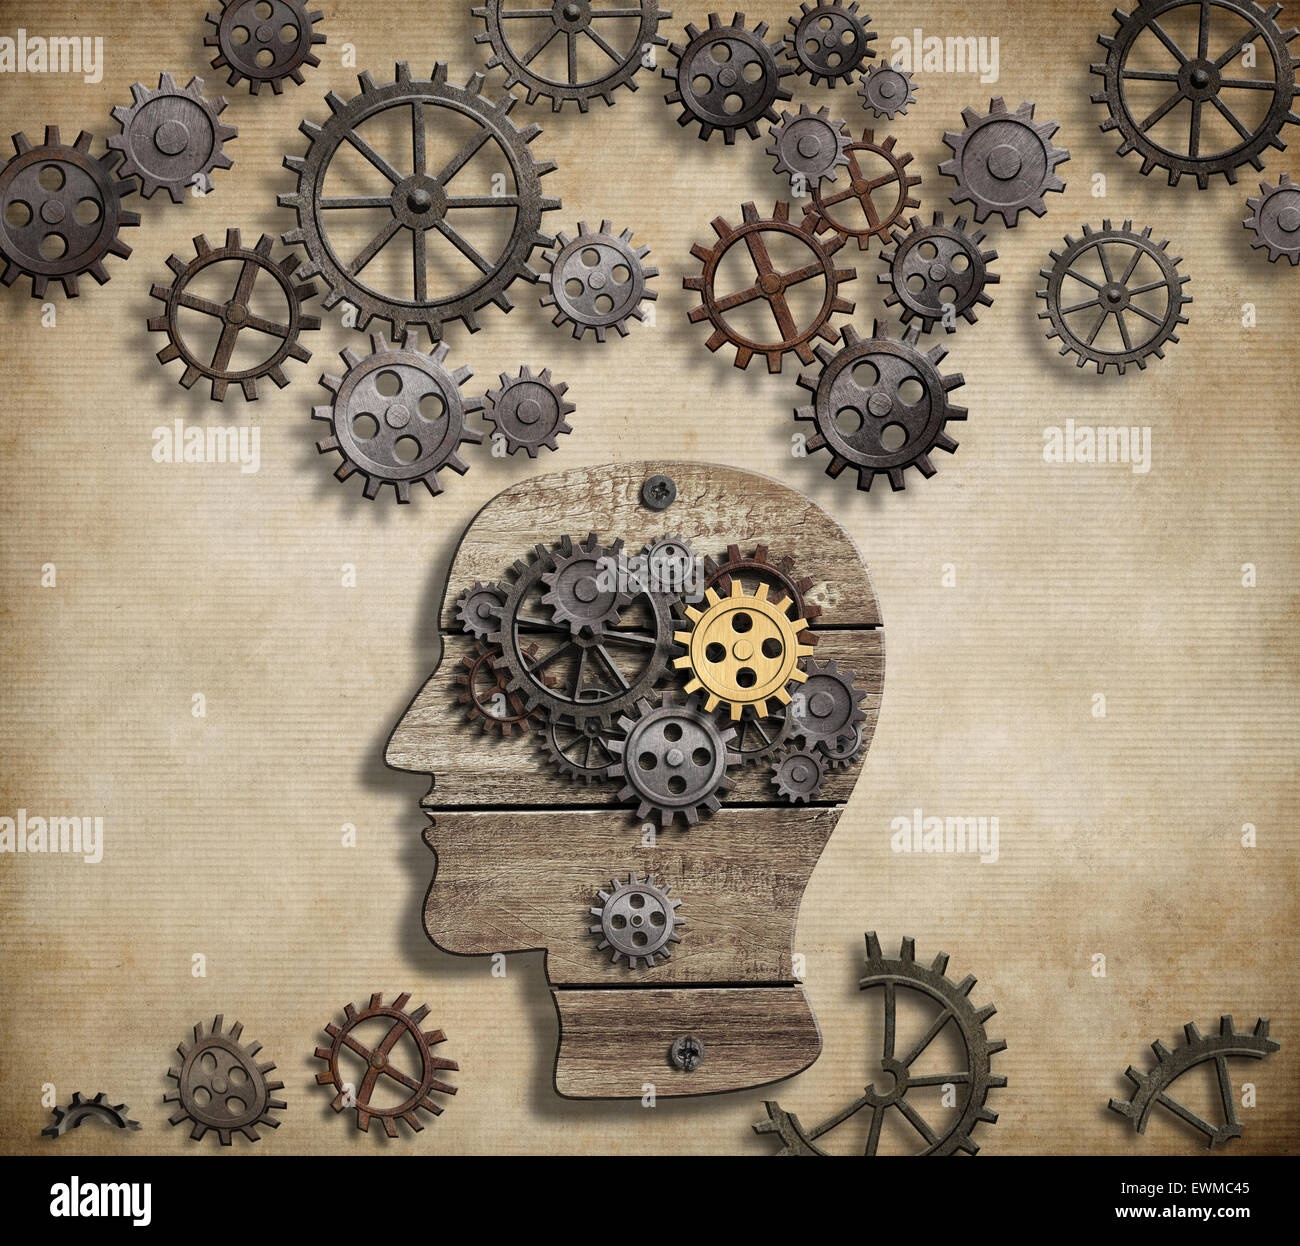 Brain mental activity, psychology, invention and idea concept - Stock Image